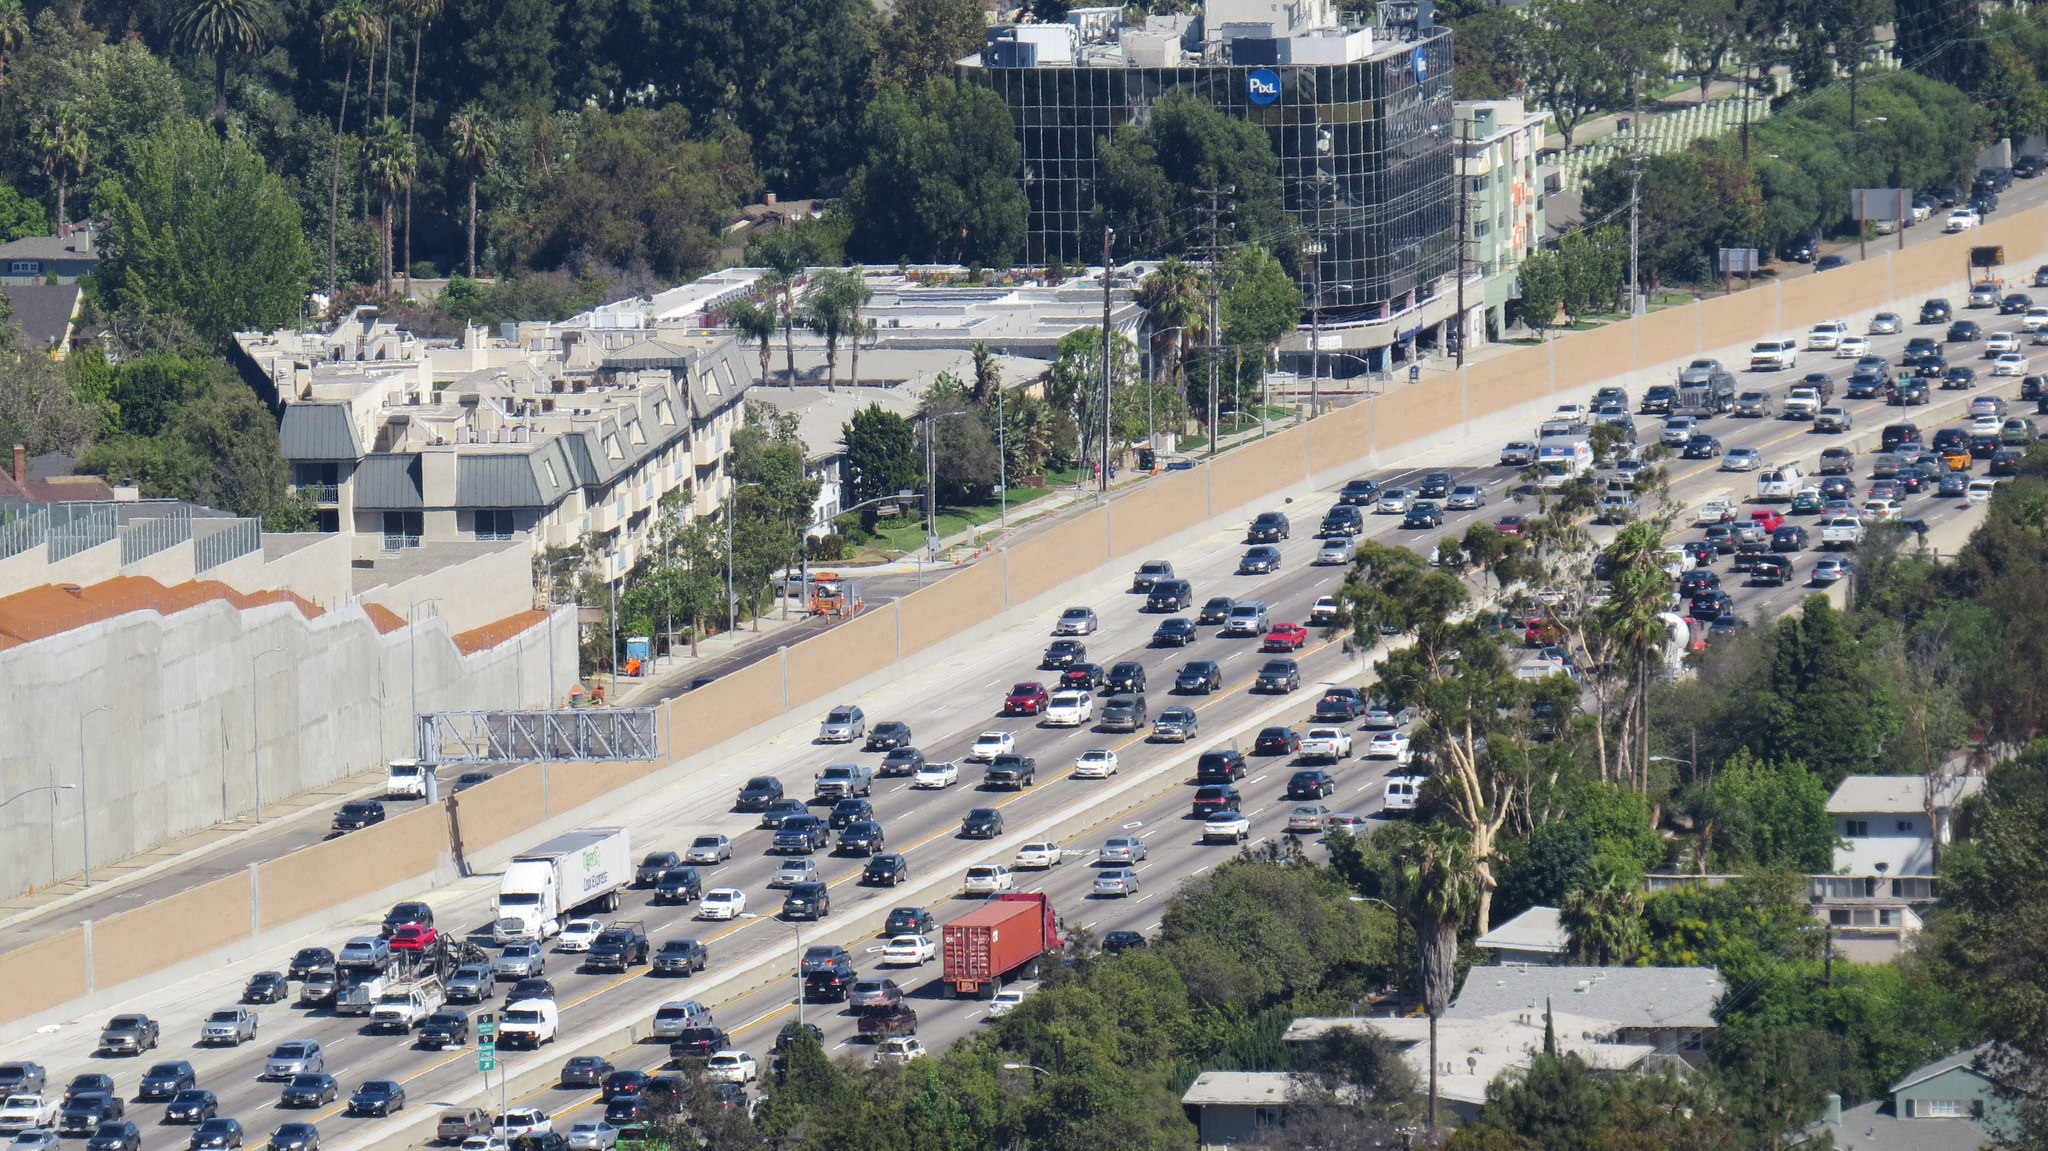 Los Angeles traffic slows the city, but cars are expensive, and transit is lacking.